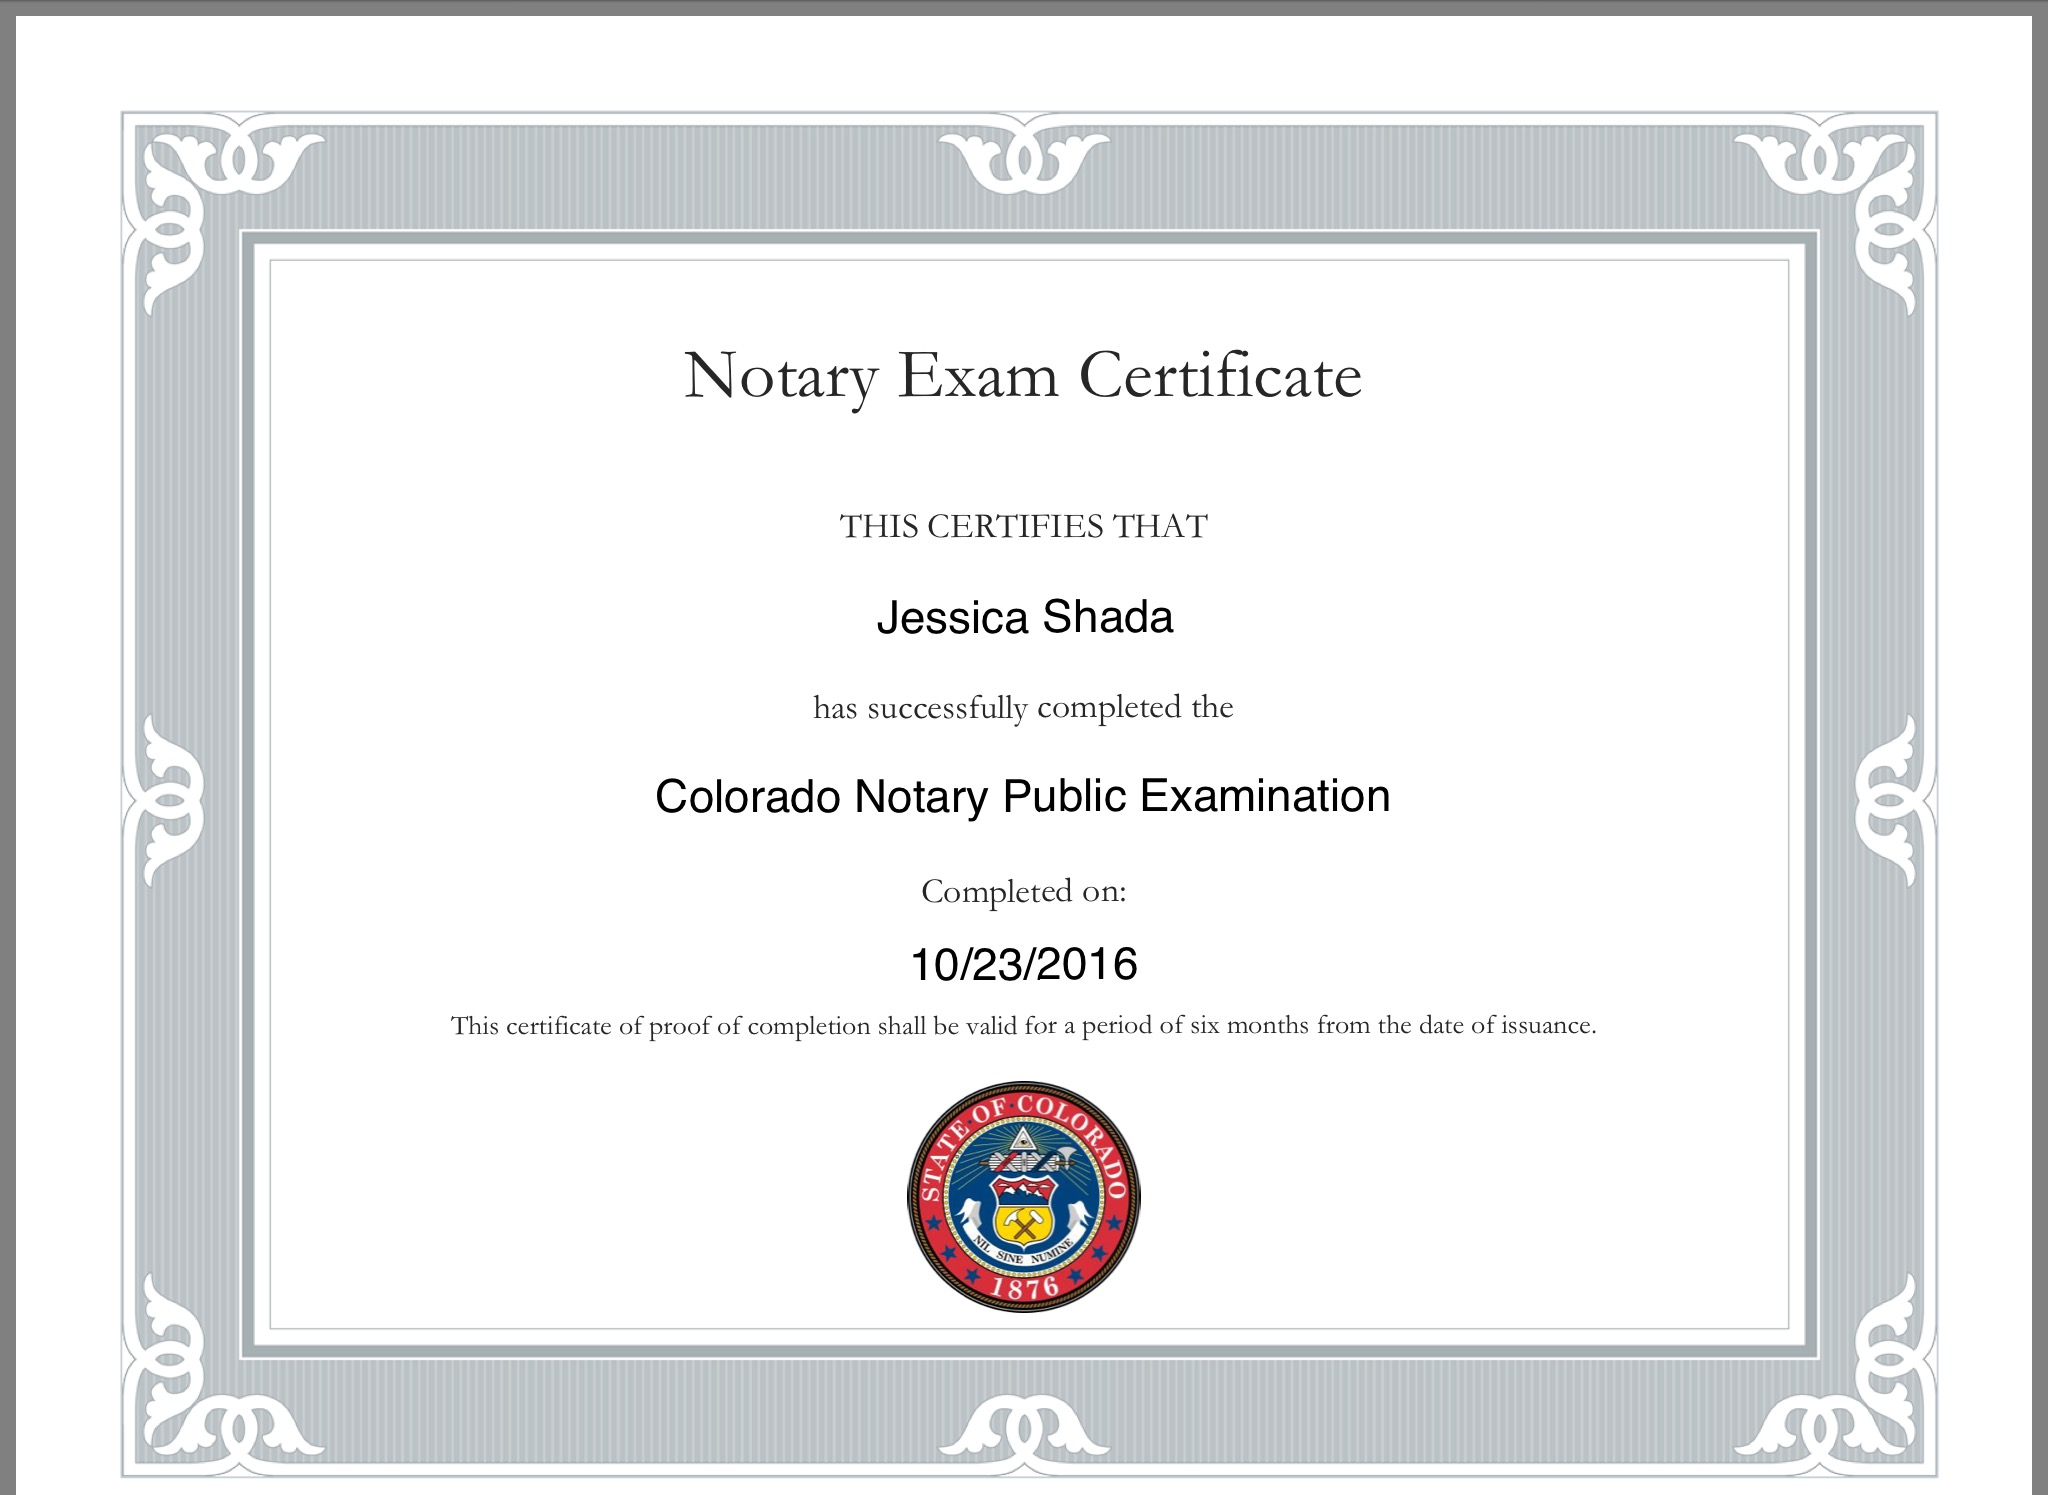 Notary public state of colorado jessica shada certification from the secretary of state xflitez Gallery